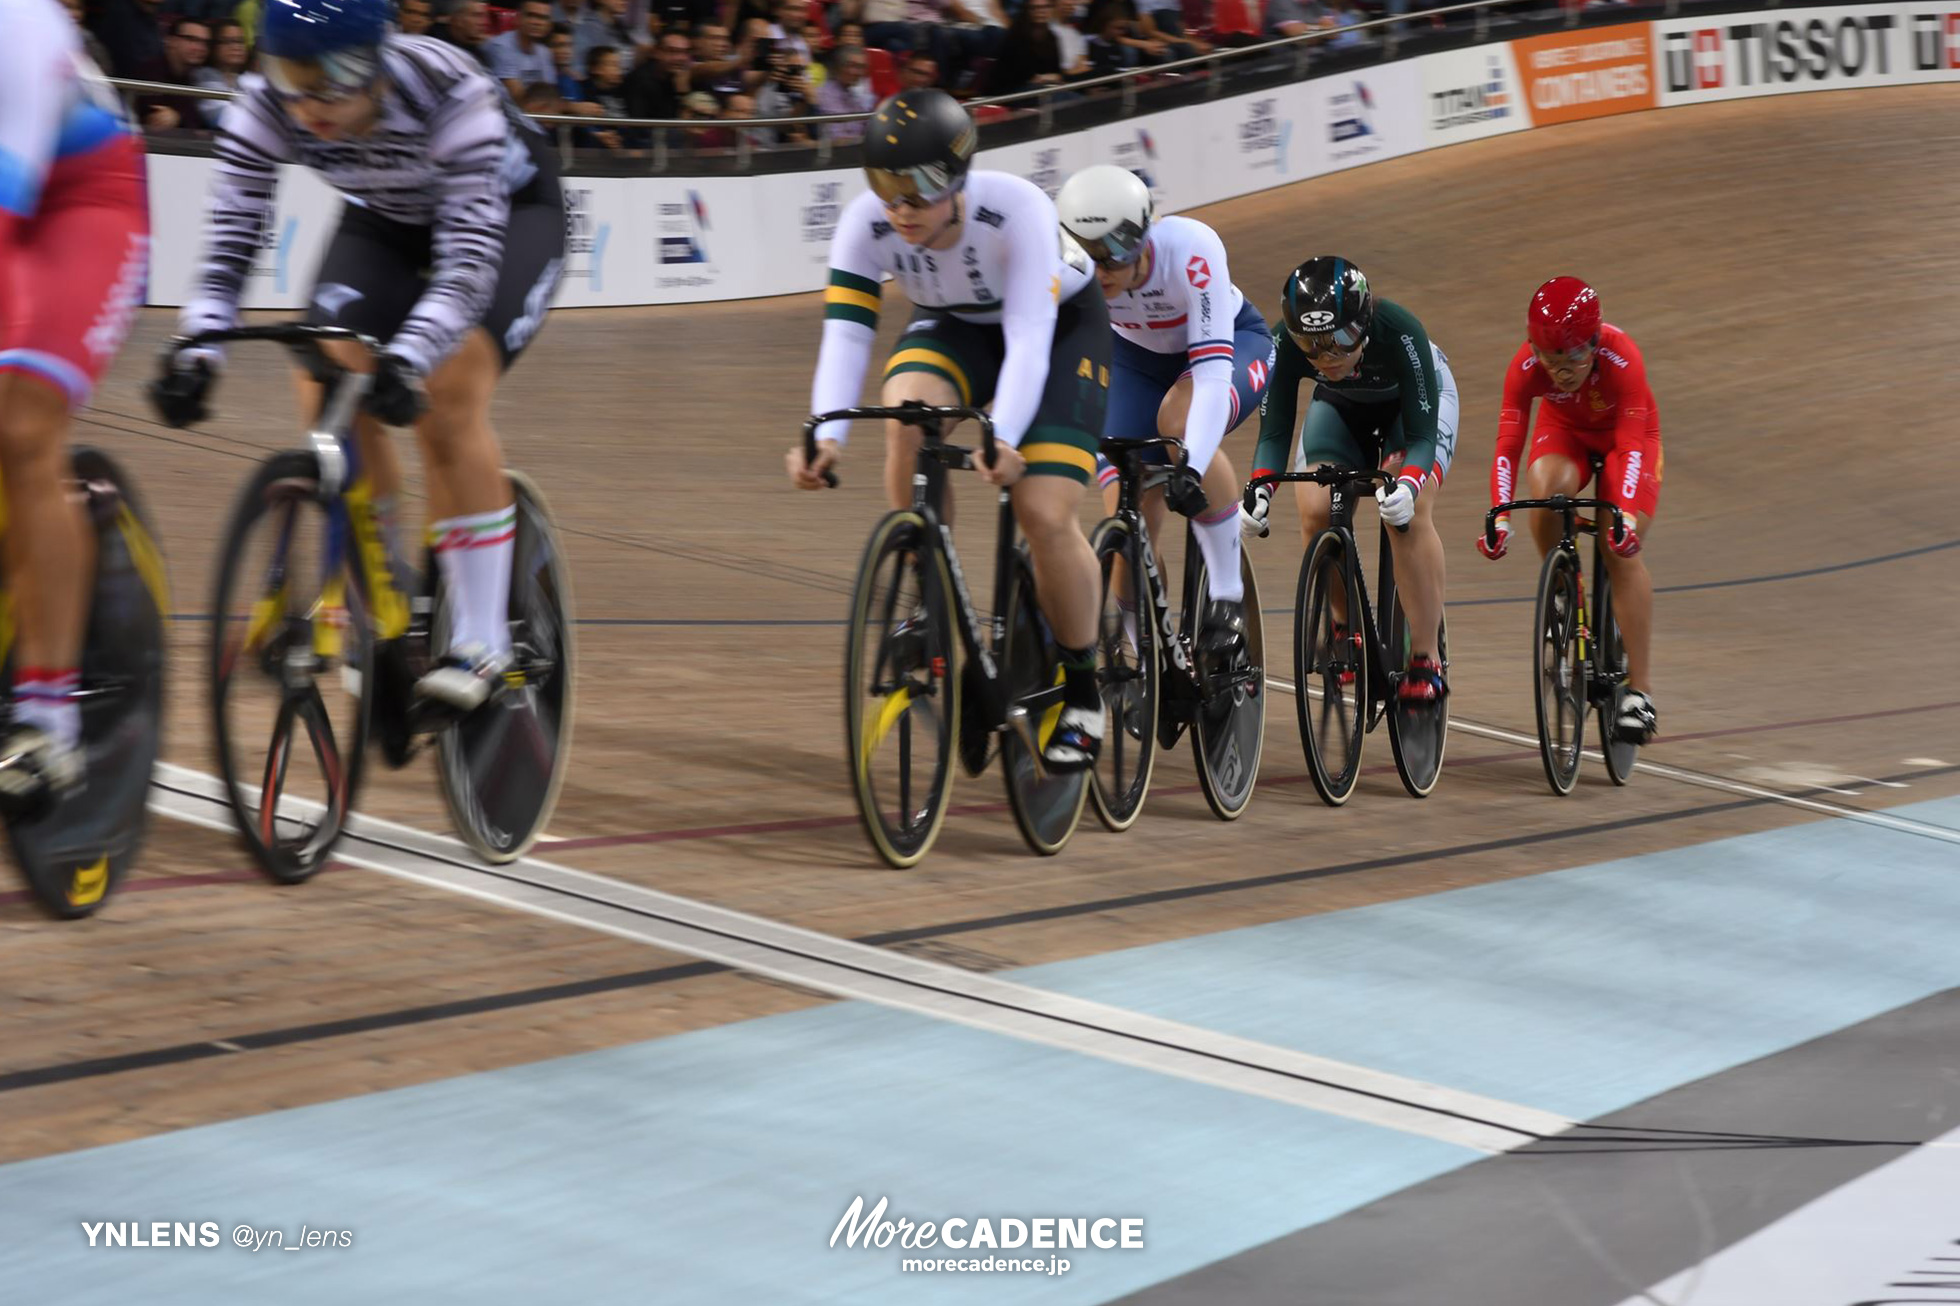 2018-2019 TRACK CYCLING WORLD CUP I Women's Keirin